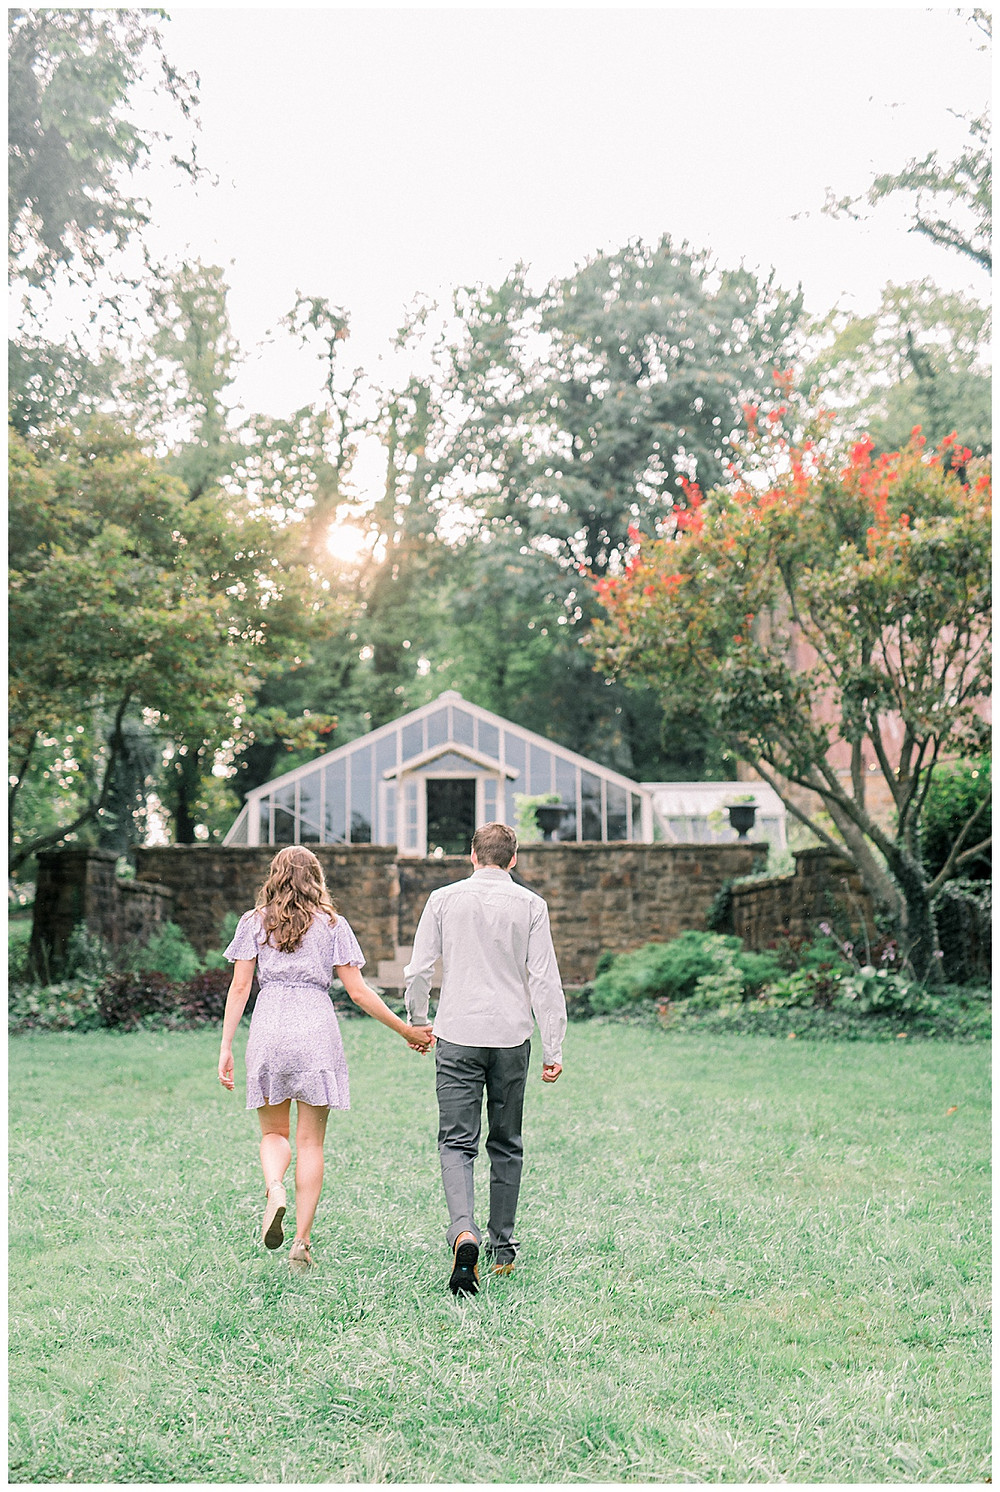 An engaged couple walking through Historic Shady Lane in late summer